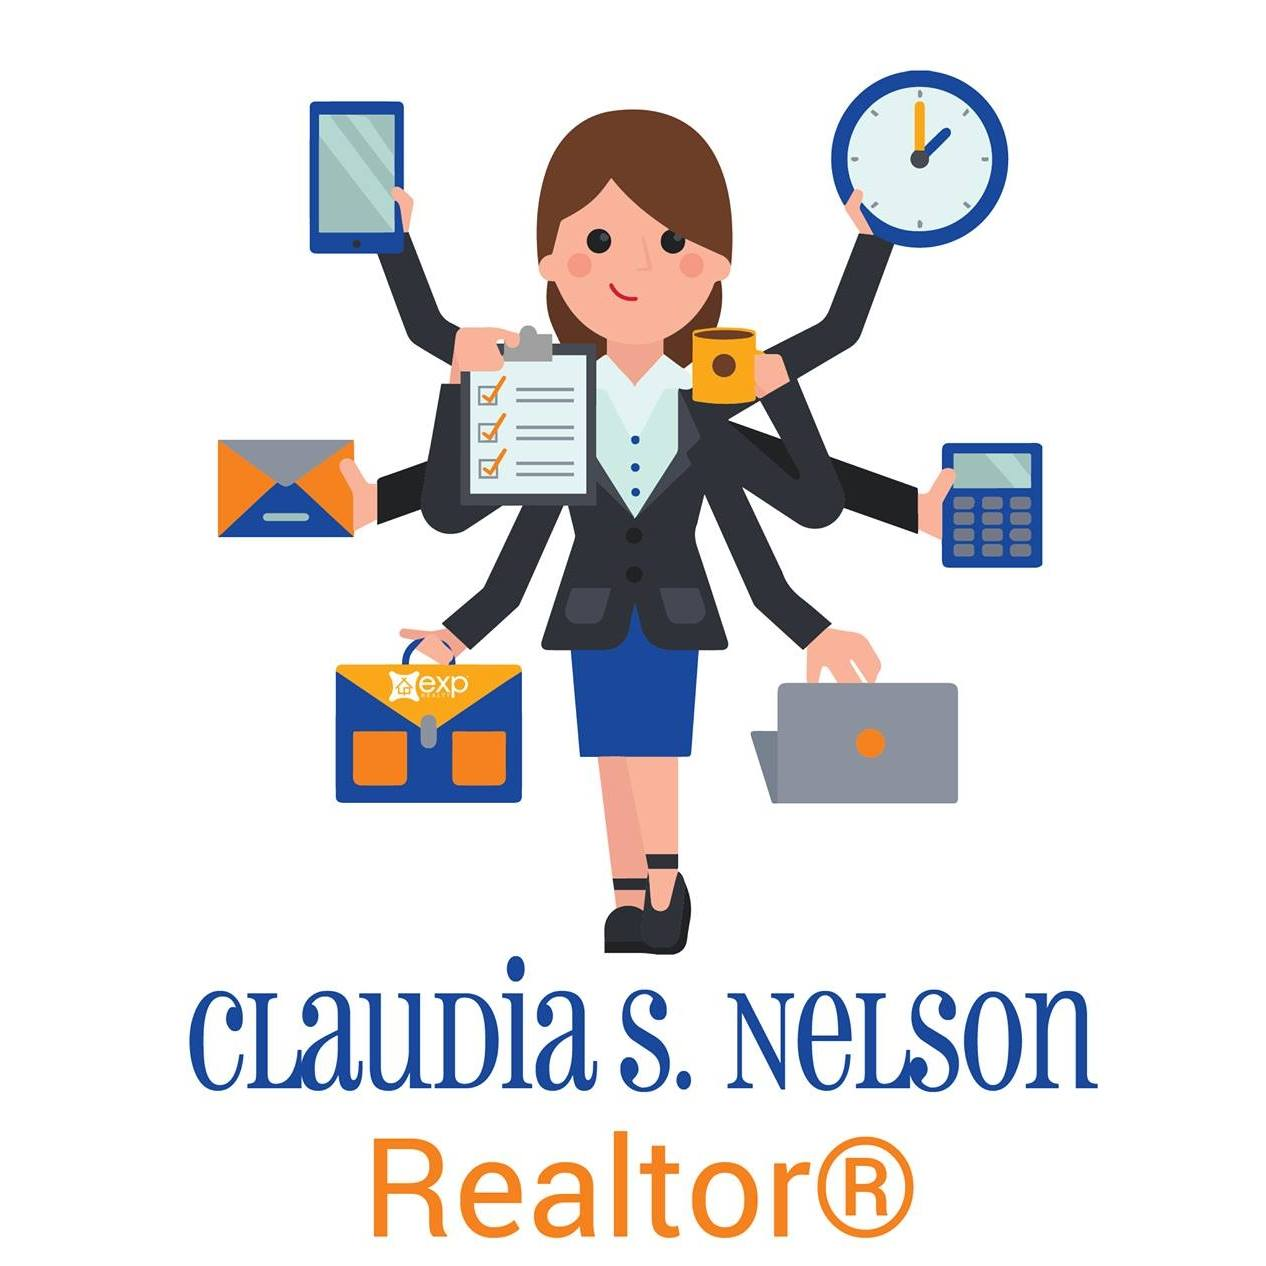 Claudia S. Nelson - My passion is assisting buyers and sellers in a manner that is as stress free and enjoyable as possible. The home buying or selling process can appear daunting and complex, but you can rely on my knowledge, experience, and know-how to assist you from the start to closing!More About Claudia S. Nelson